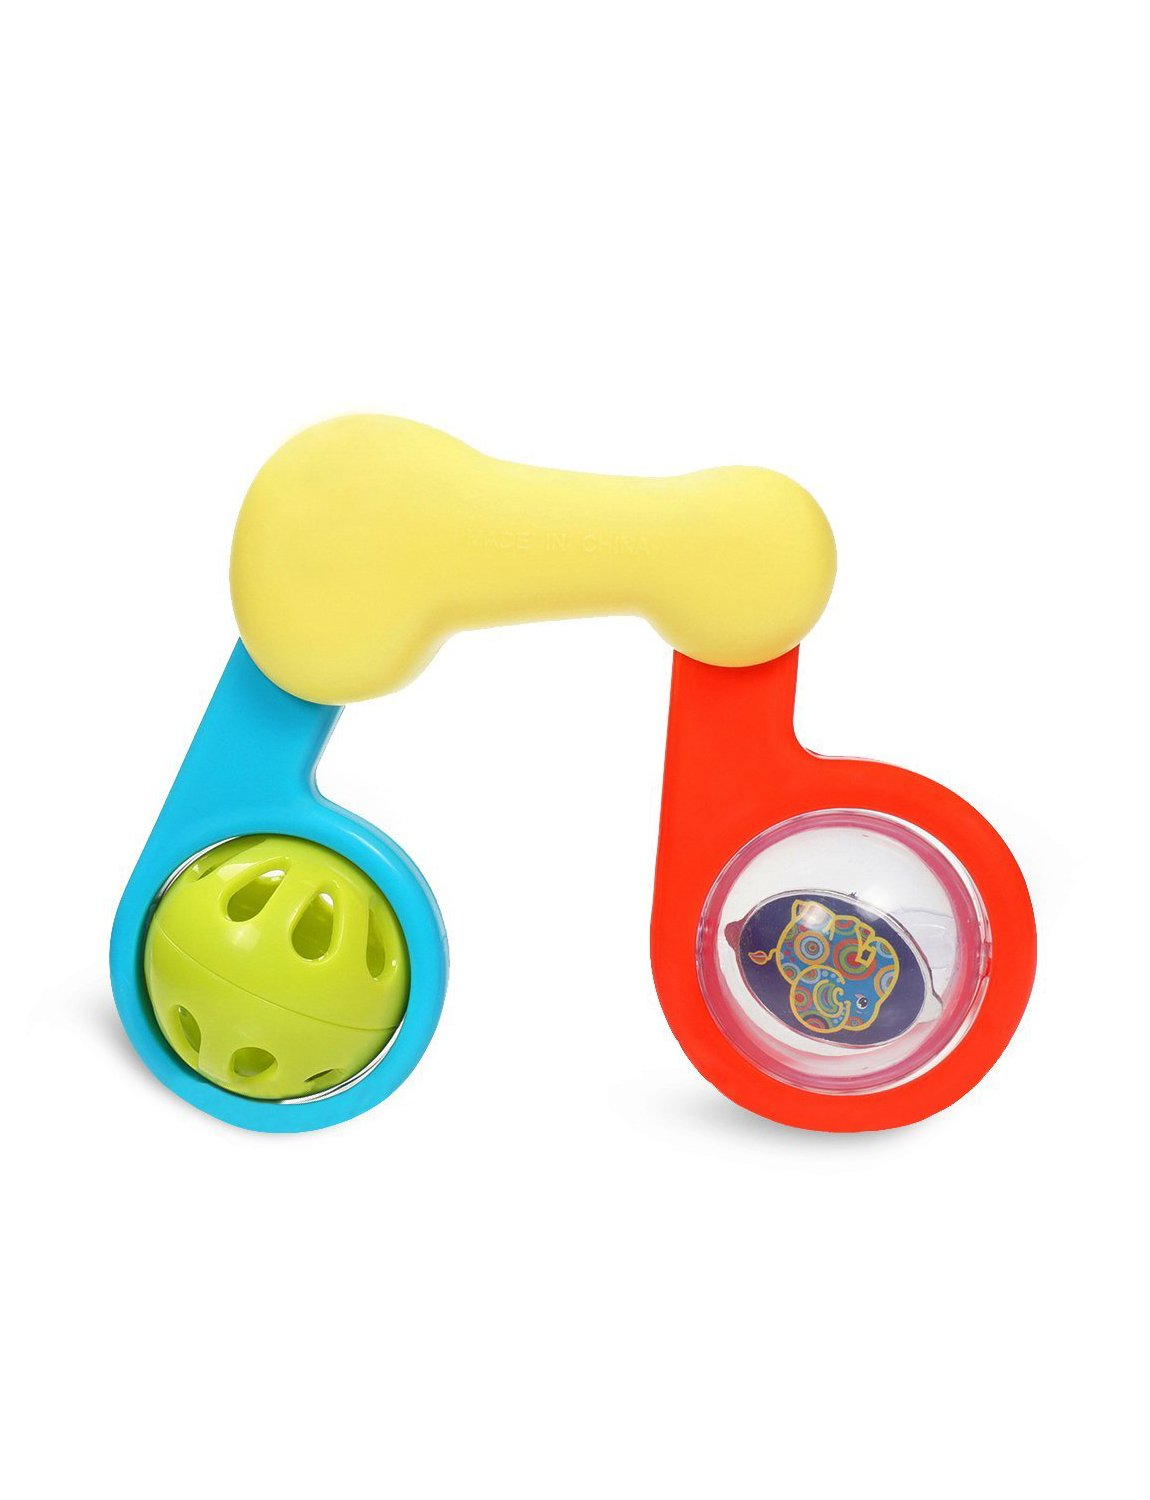 KONIG KIDS Baby Rattle Music Note Toy for Newborns 3 Months + Multicolor